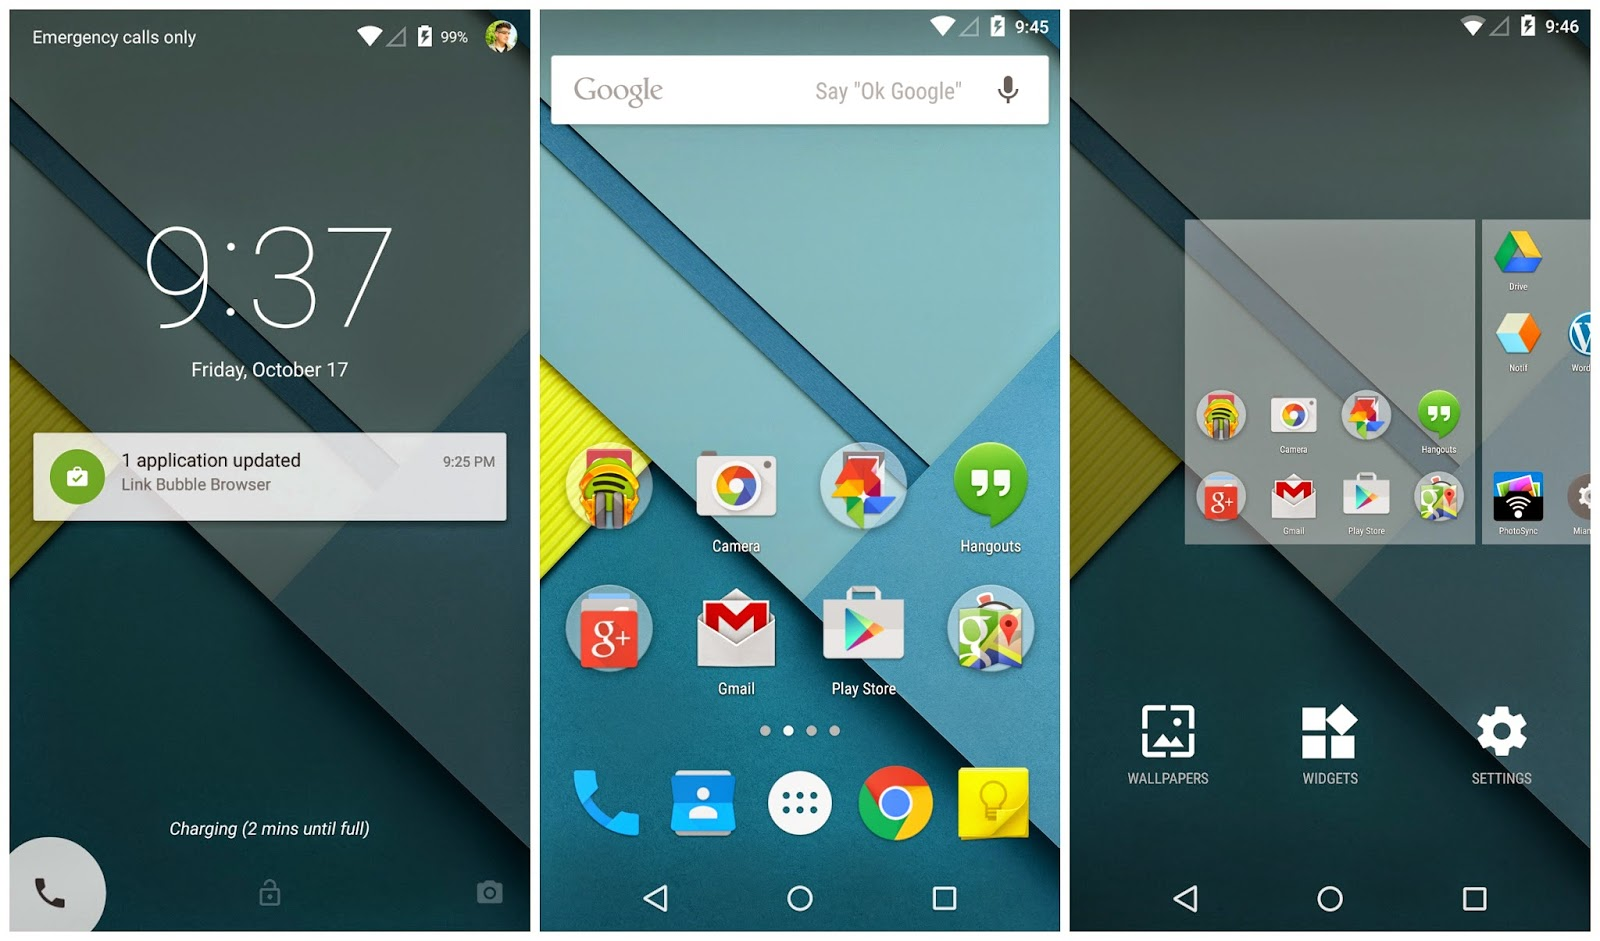 Android 5 interface